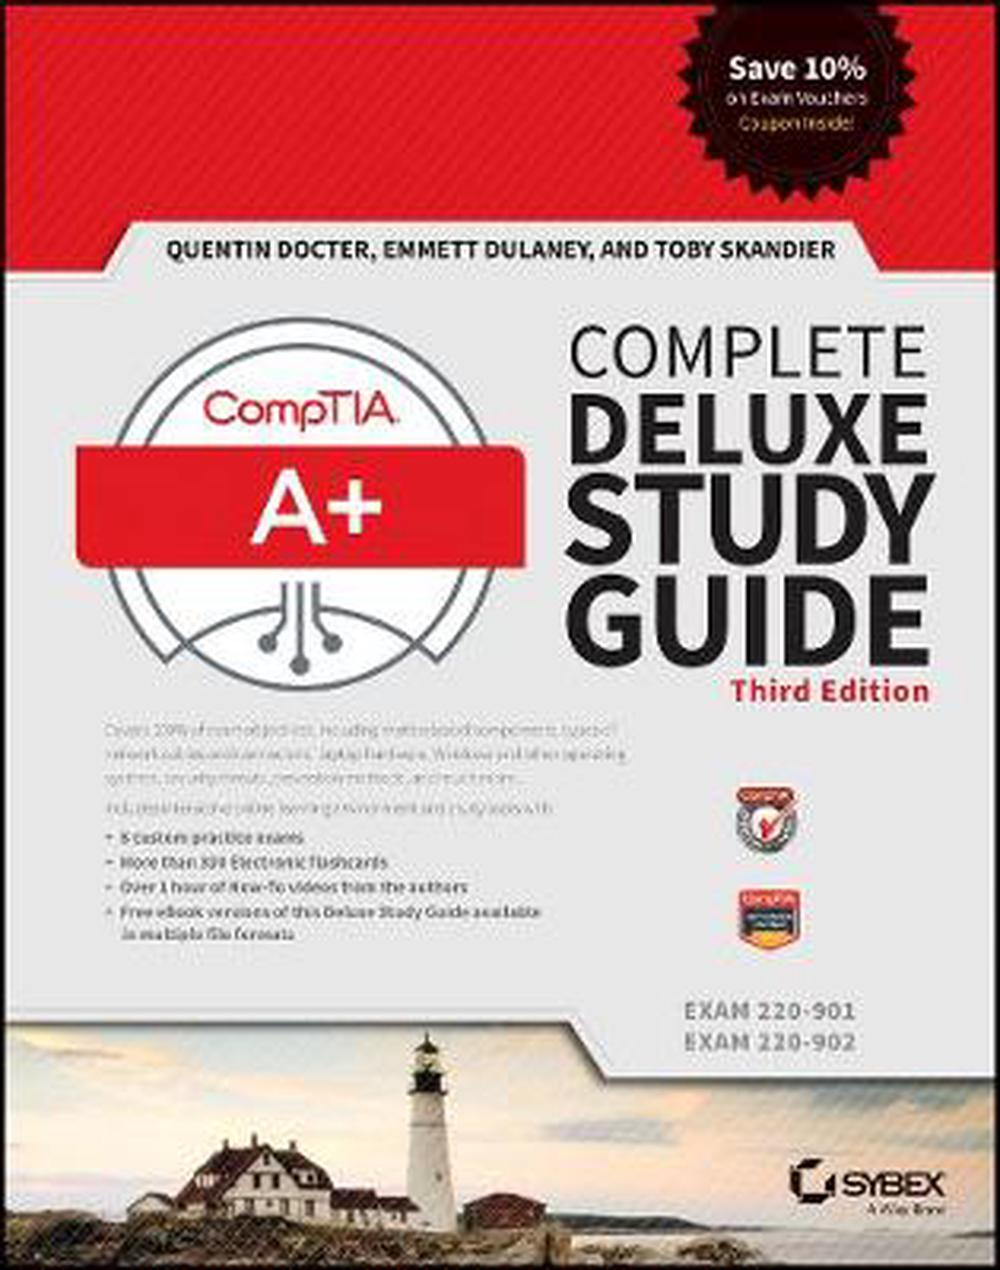 Comptia A+ Complete Deluxe Study Guide (Exams 220-901 and 220-902), Third Edition